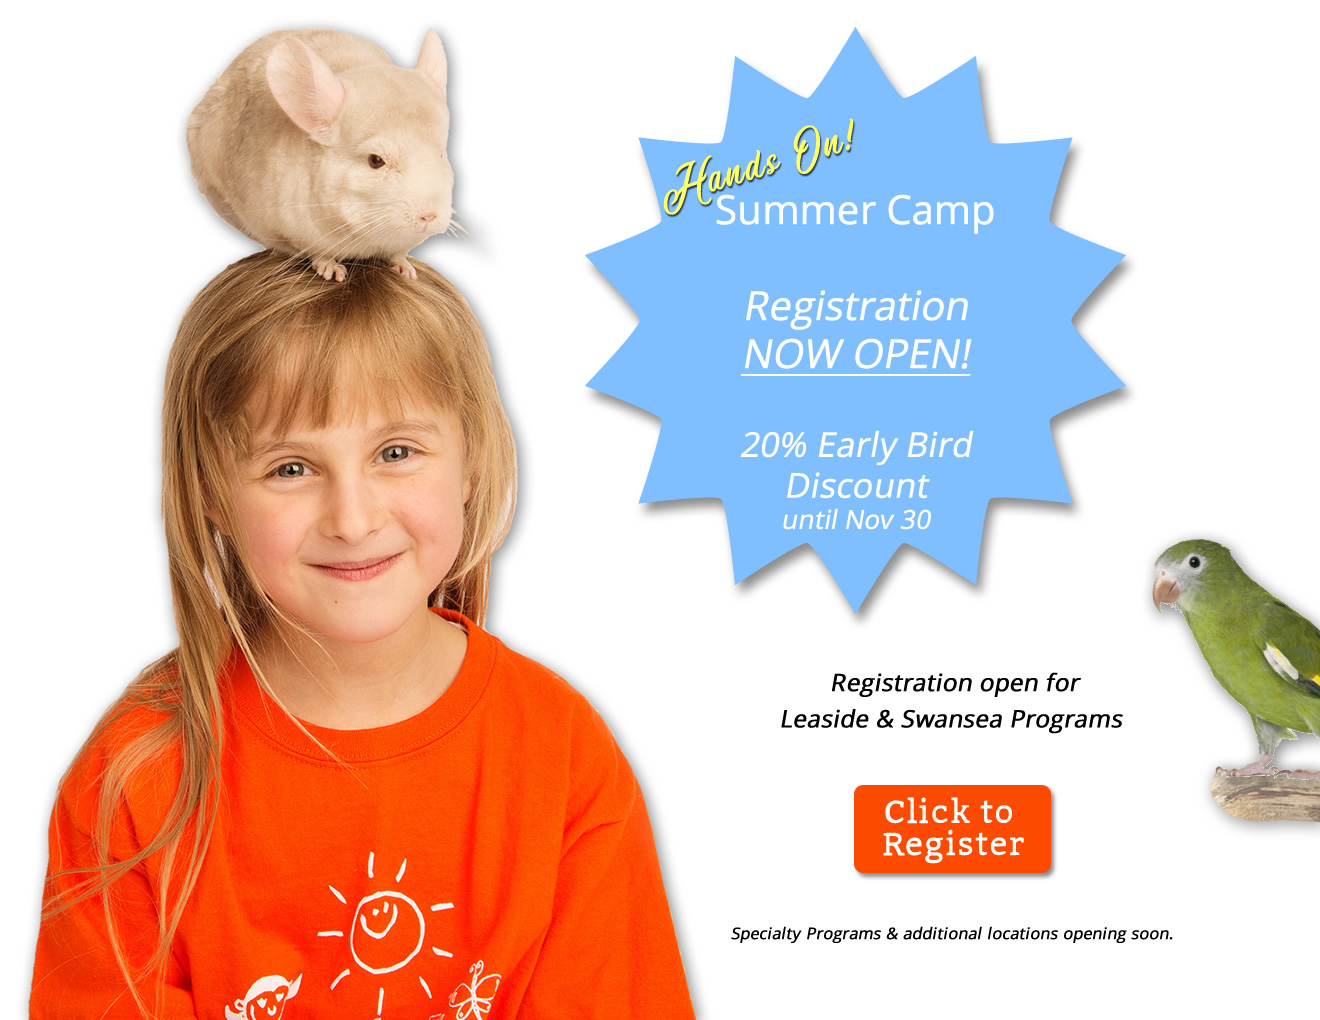 Summer Camp registration now open! Early bird 20% discount until Nov. 30.